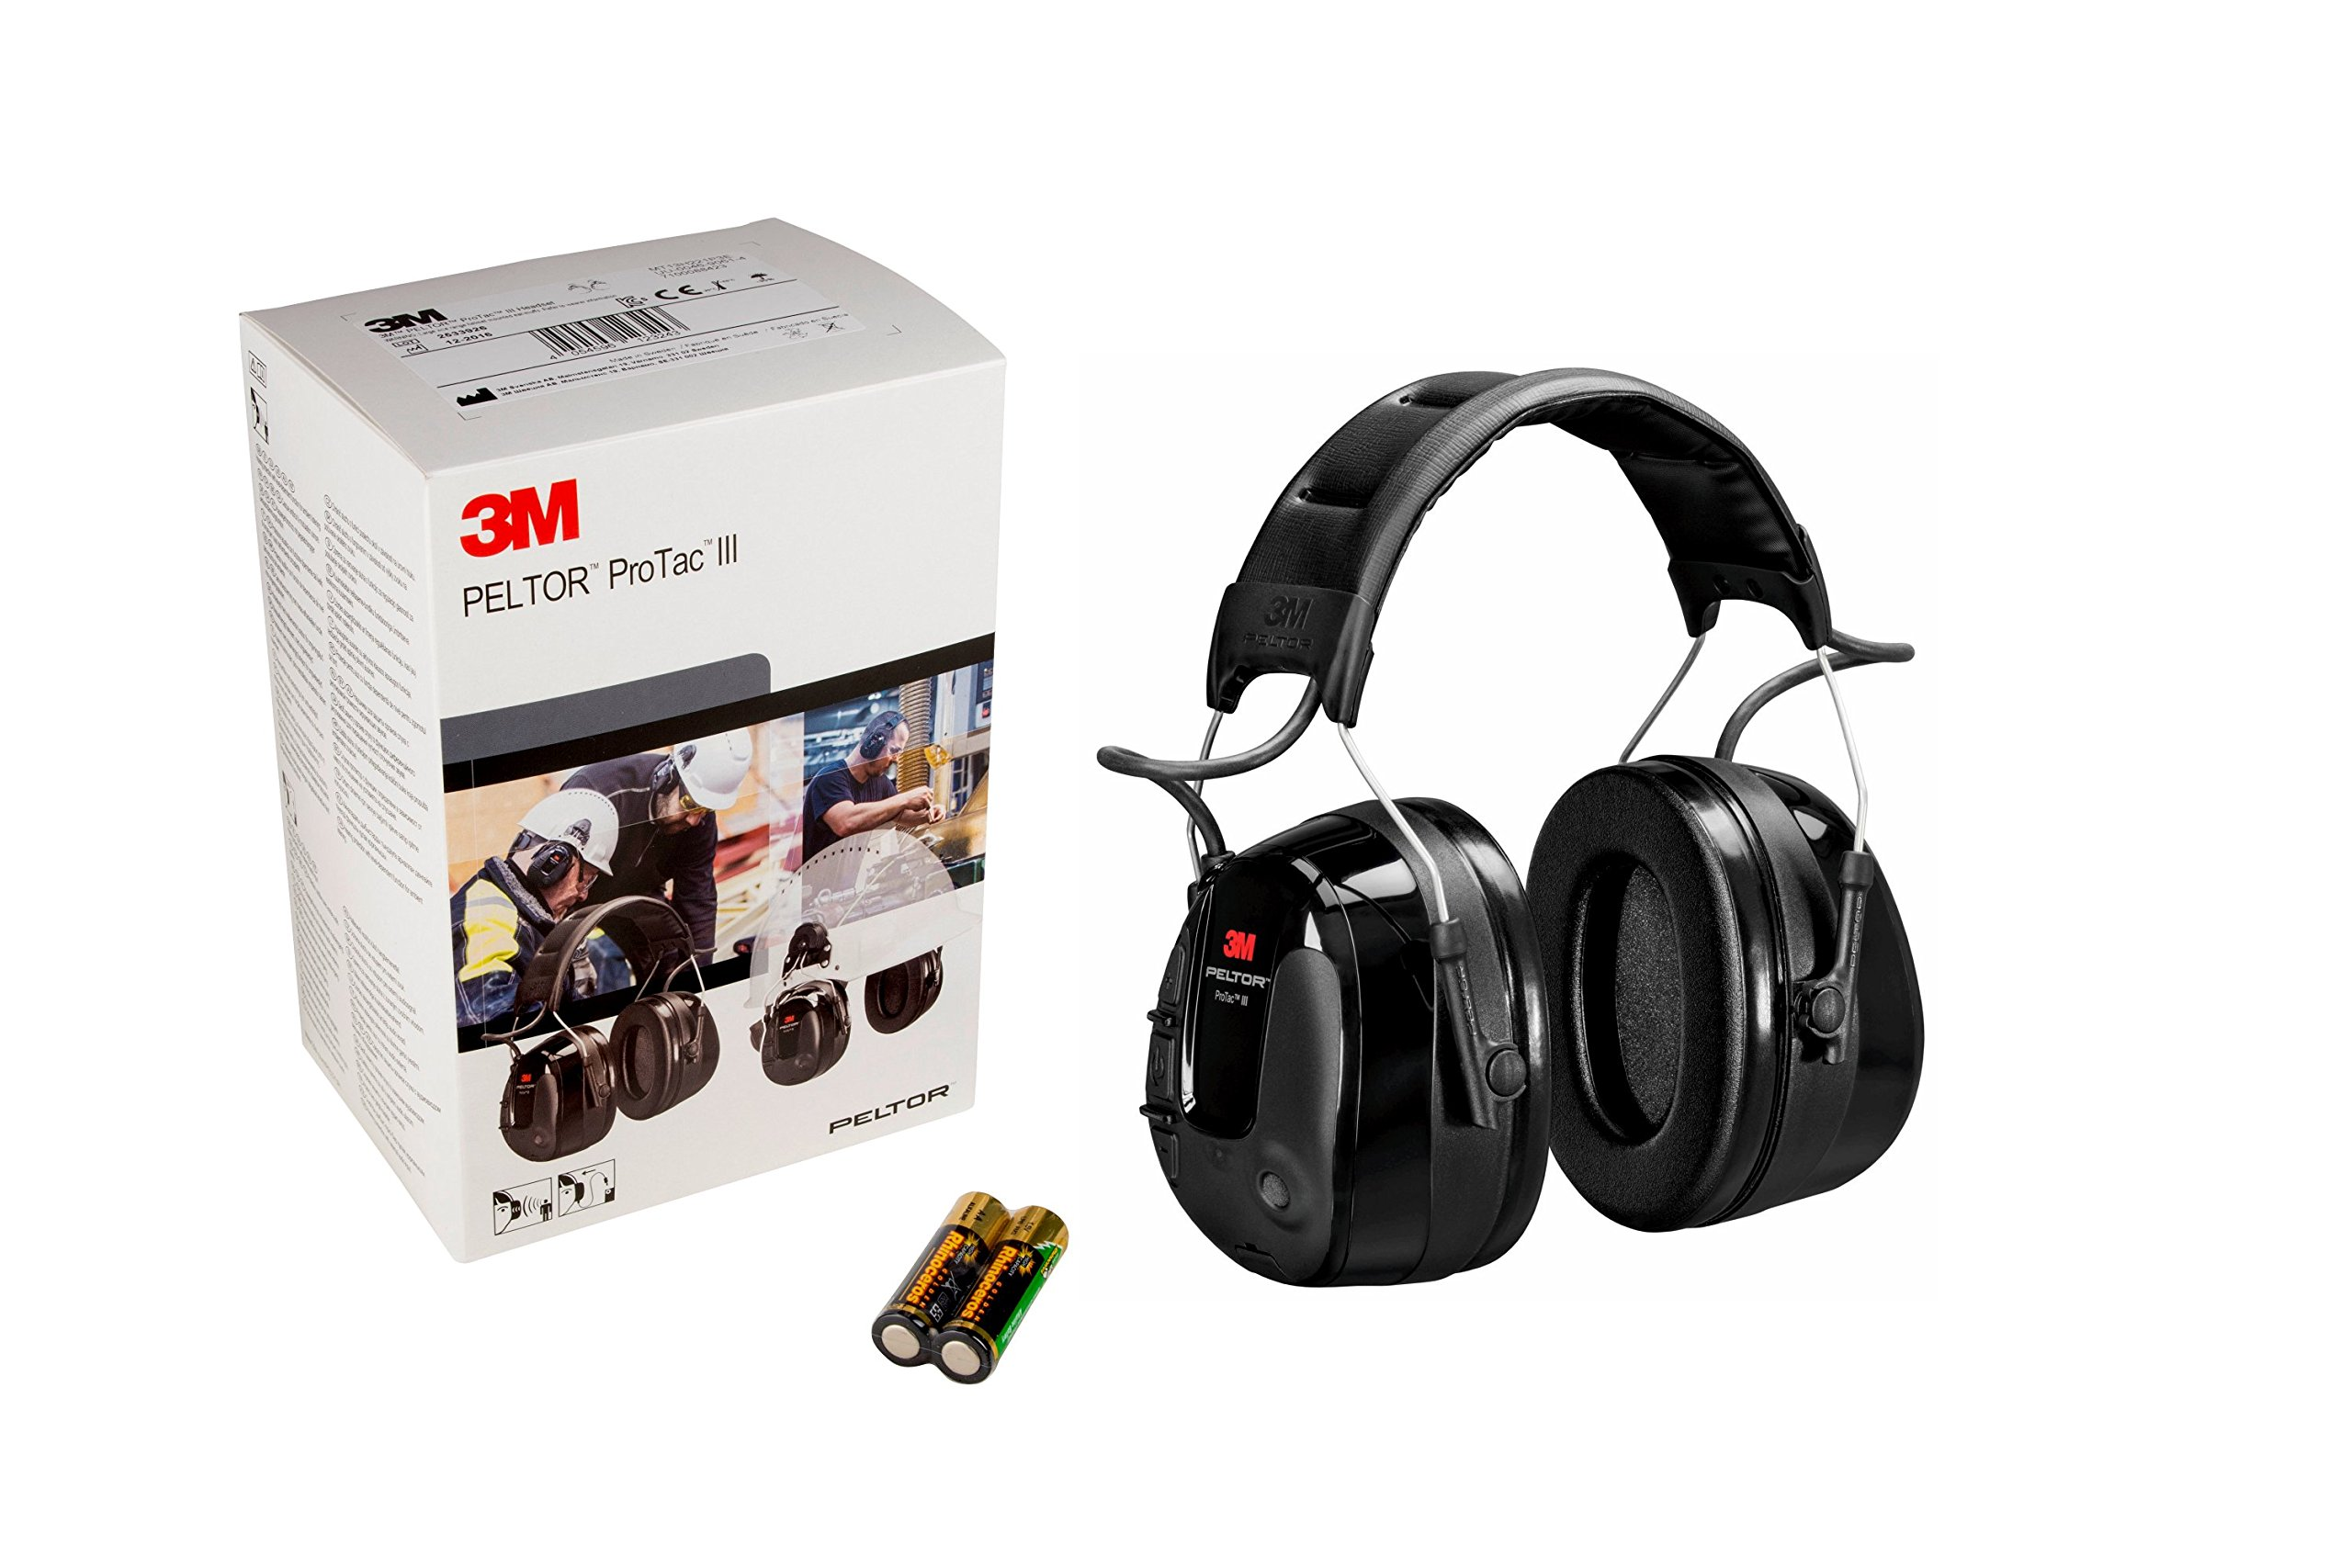 3M 12321 PELTOR ProTac III Headset, Headband, One Size, Black by 3M Personal Protective Equipment